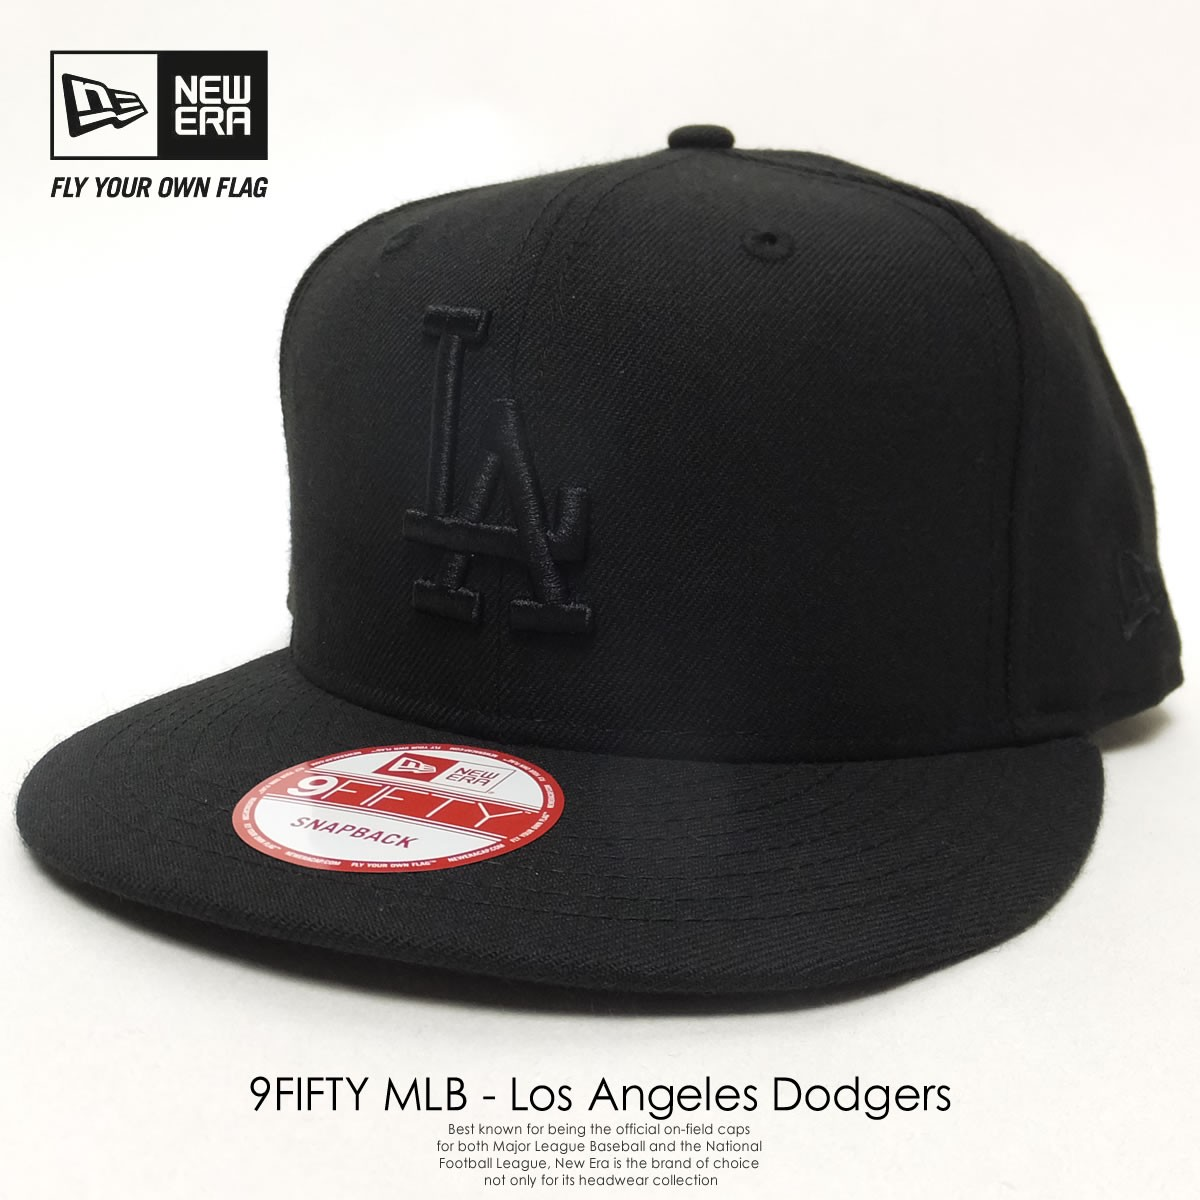 483fcf2653e01d New Era 950 Los Angeles Dodgers Basic Snapback Hat Mens Cap Black/White